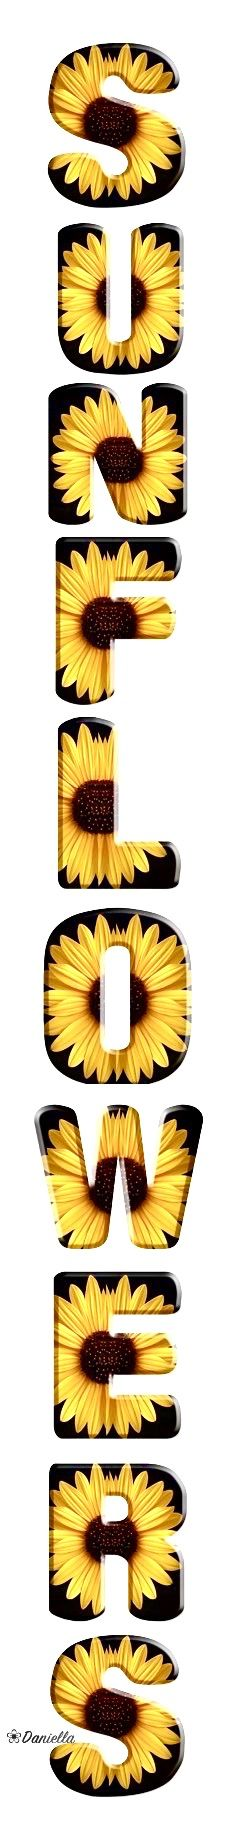 Sunflower Garden, Sunflower Fields, Growing Sunflowers, Harvest Time, Have A Blessed Day, May Flowers, Love You All, Summer Fun, Flower Power